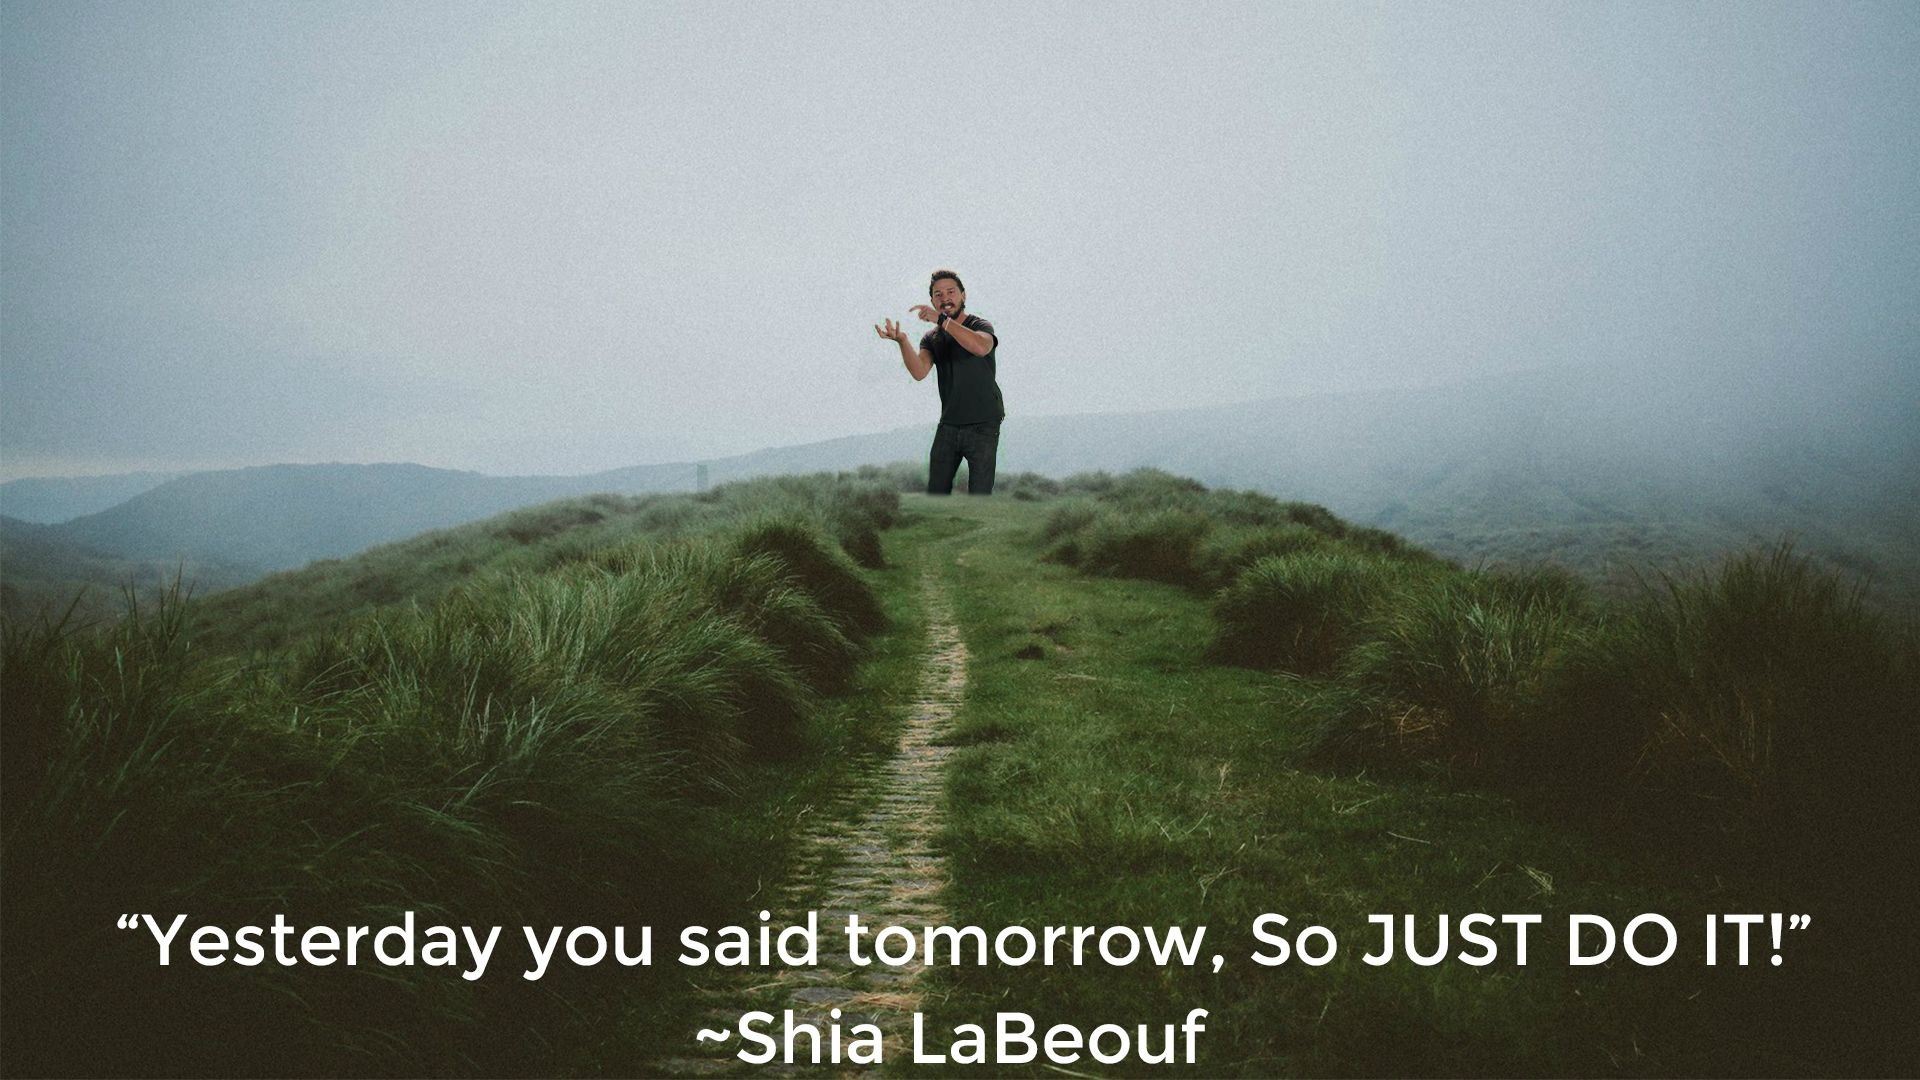 Achieve Quotes Wallpaper Shia Labeouf Just Do It Wallpaper 69 Images